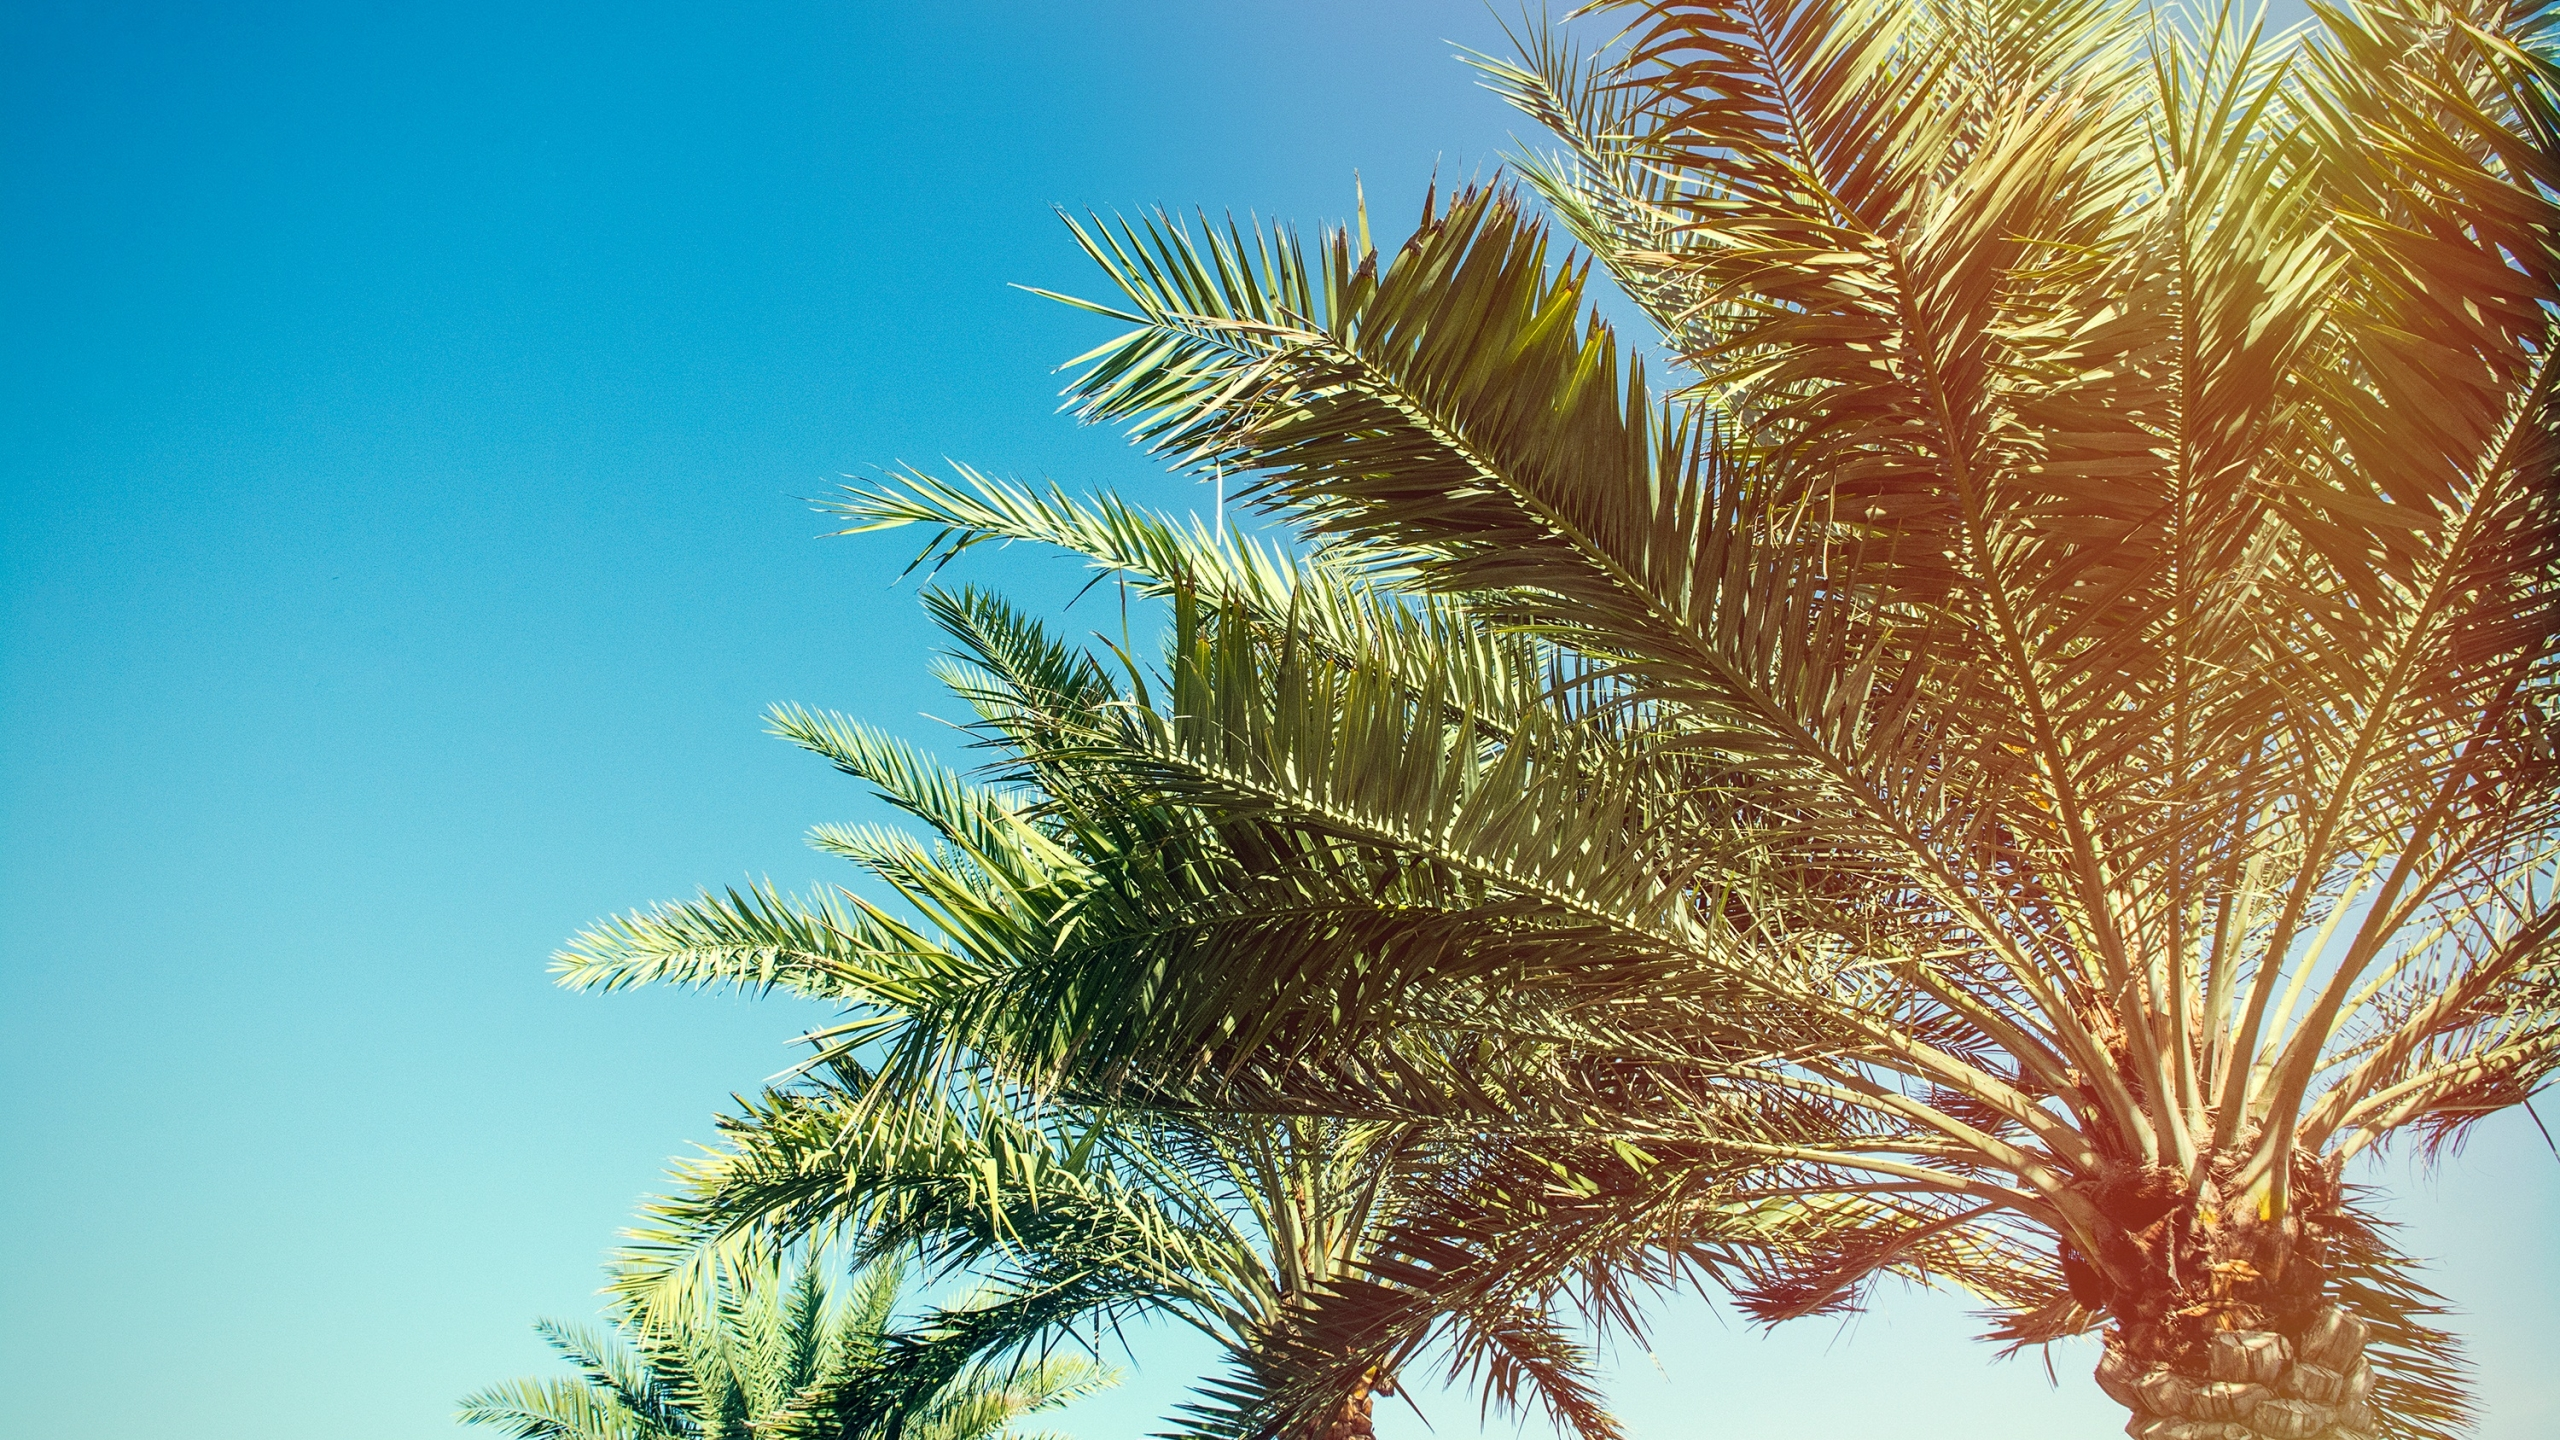 2560x1440 palm, trees, branches 1440P